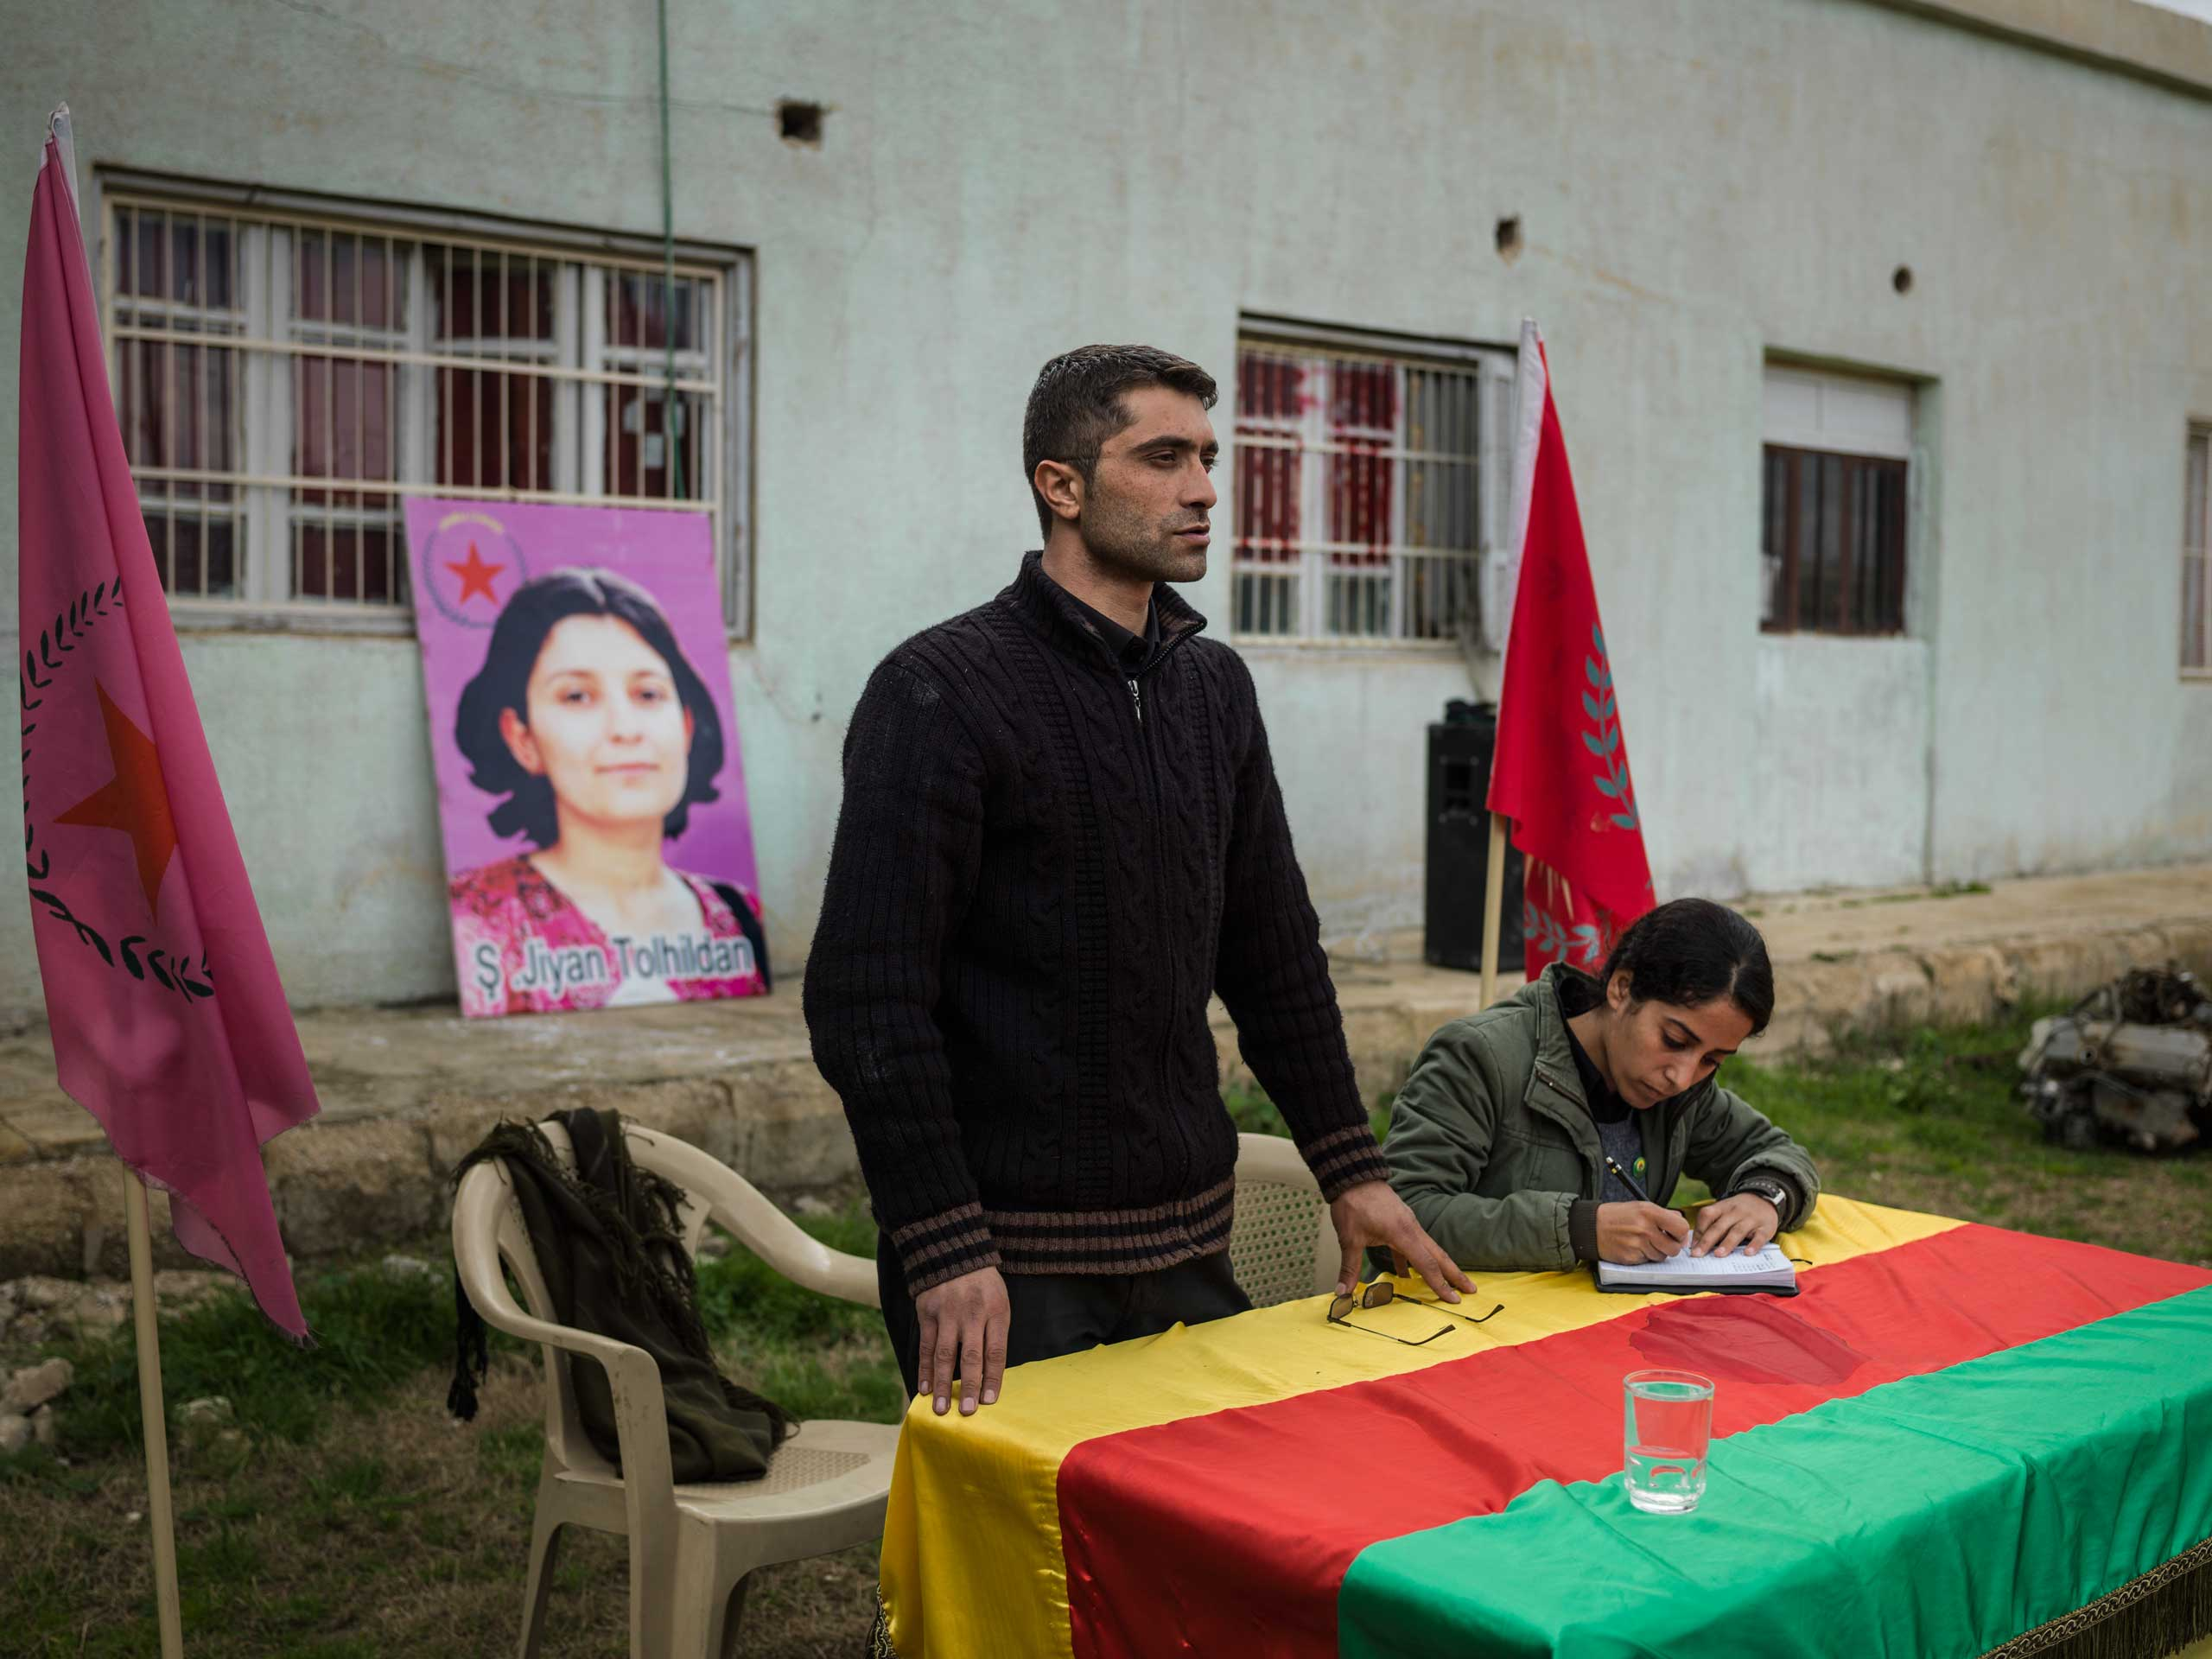 In Western Kurdistan, the Syrian autonomous region Kurds call Rojava, young people are taught the ideology of the PYD (the Democratic Union Party of Syria), an affiliate of PKK (Kurdistan Workers' Party). Many of these young people will soon be drafted into YPJ and YPG armies to fight ISIS.